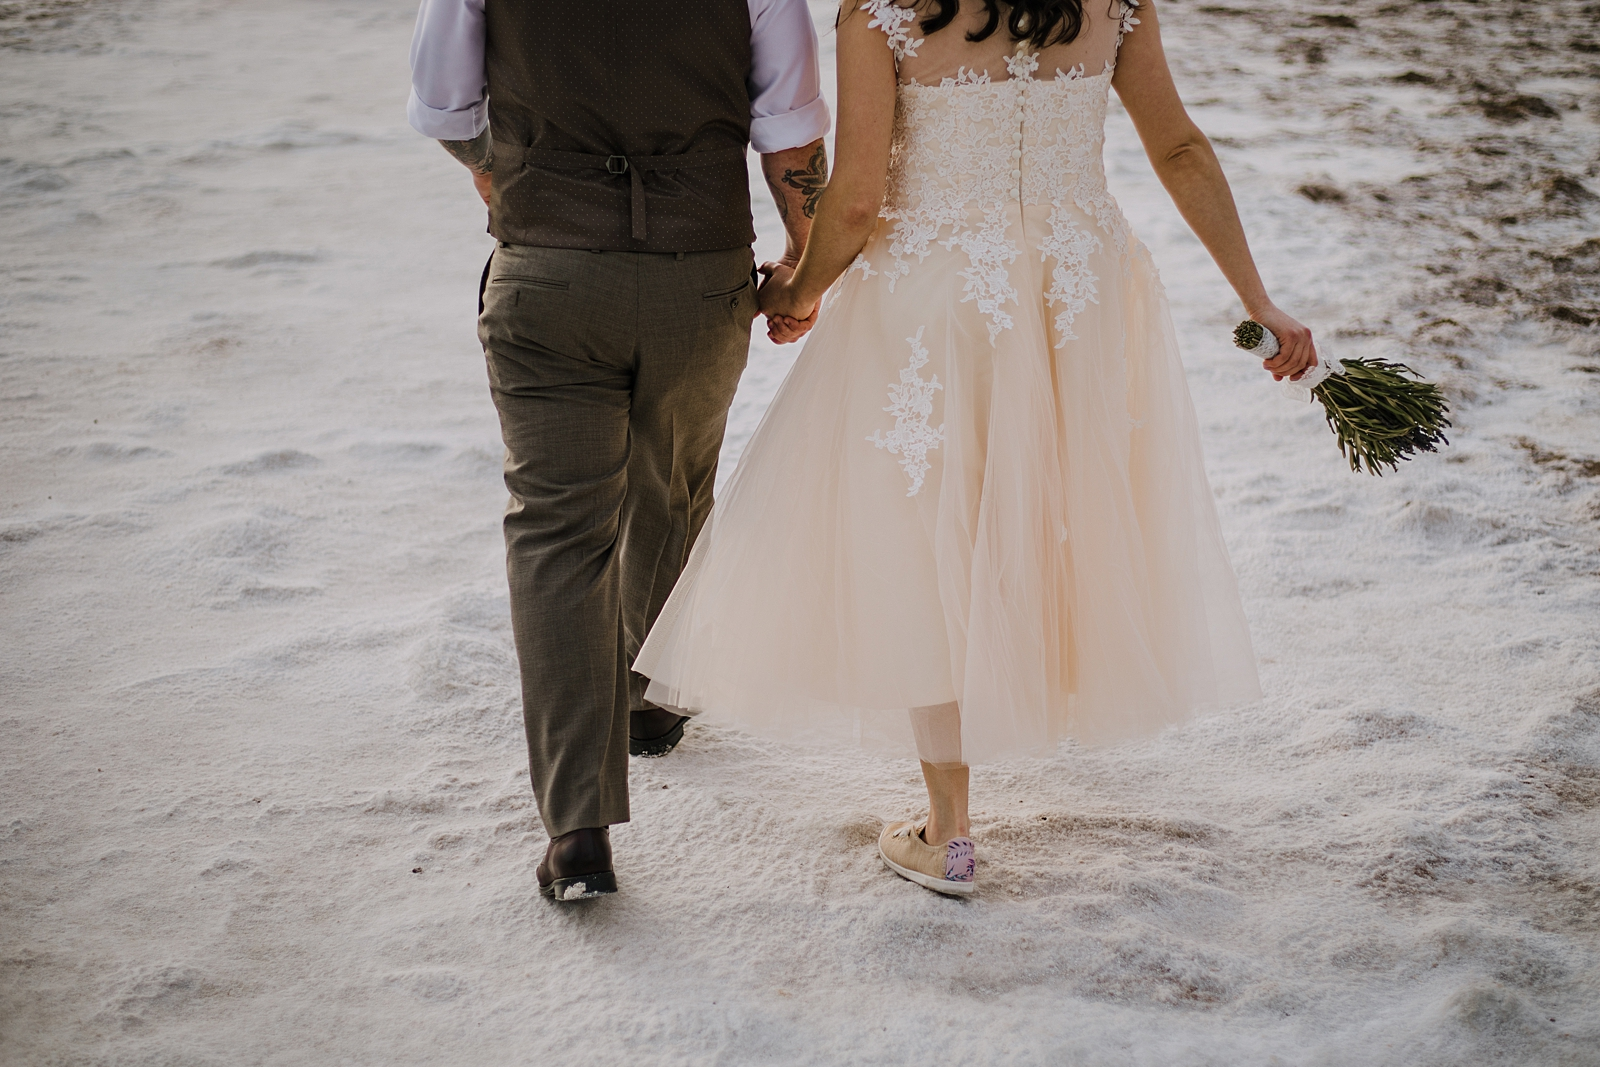 couple hiking the salt flats, death valley national park elopement, elope in death valley, badwater basin elopement, hiking in death valley national park, sunset at badwater basin